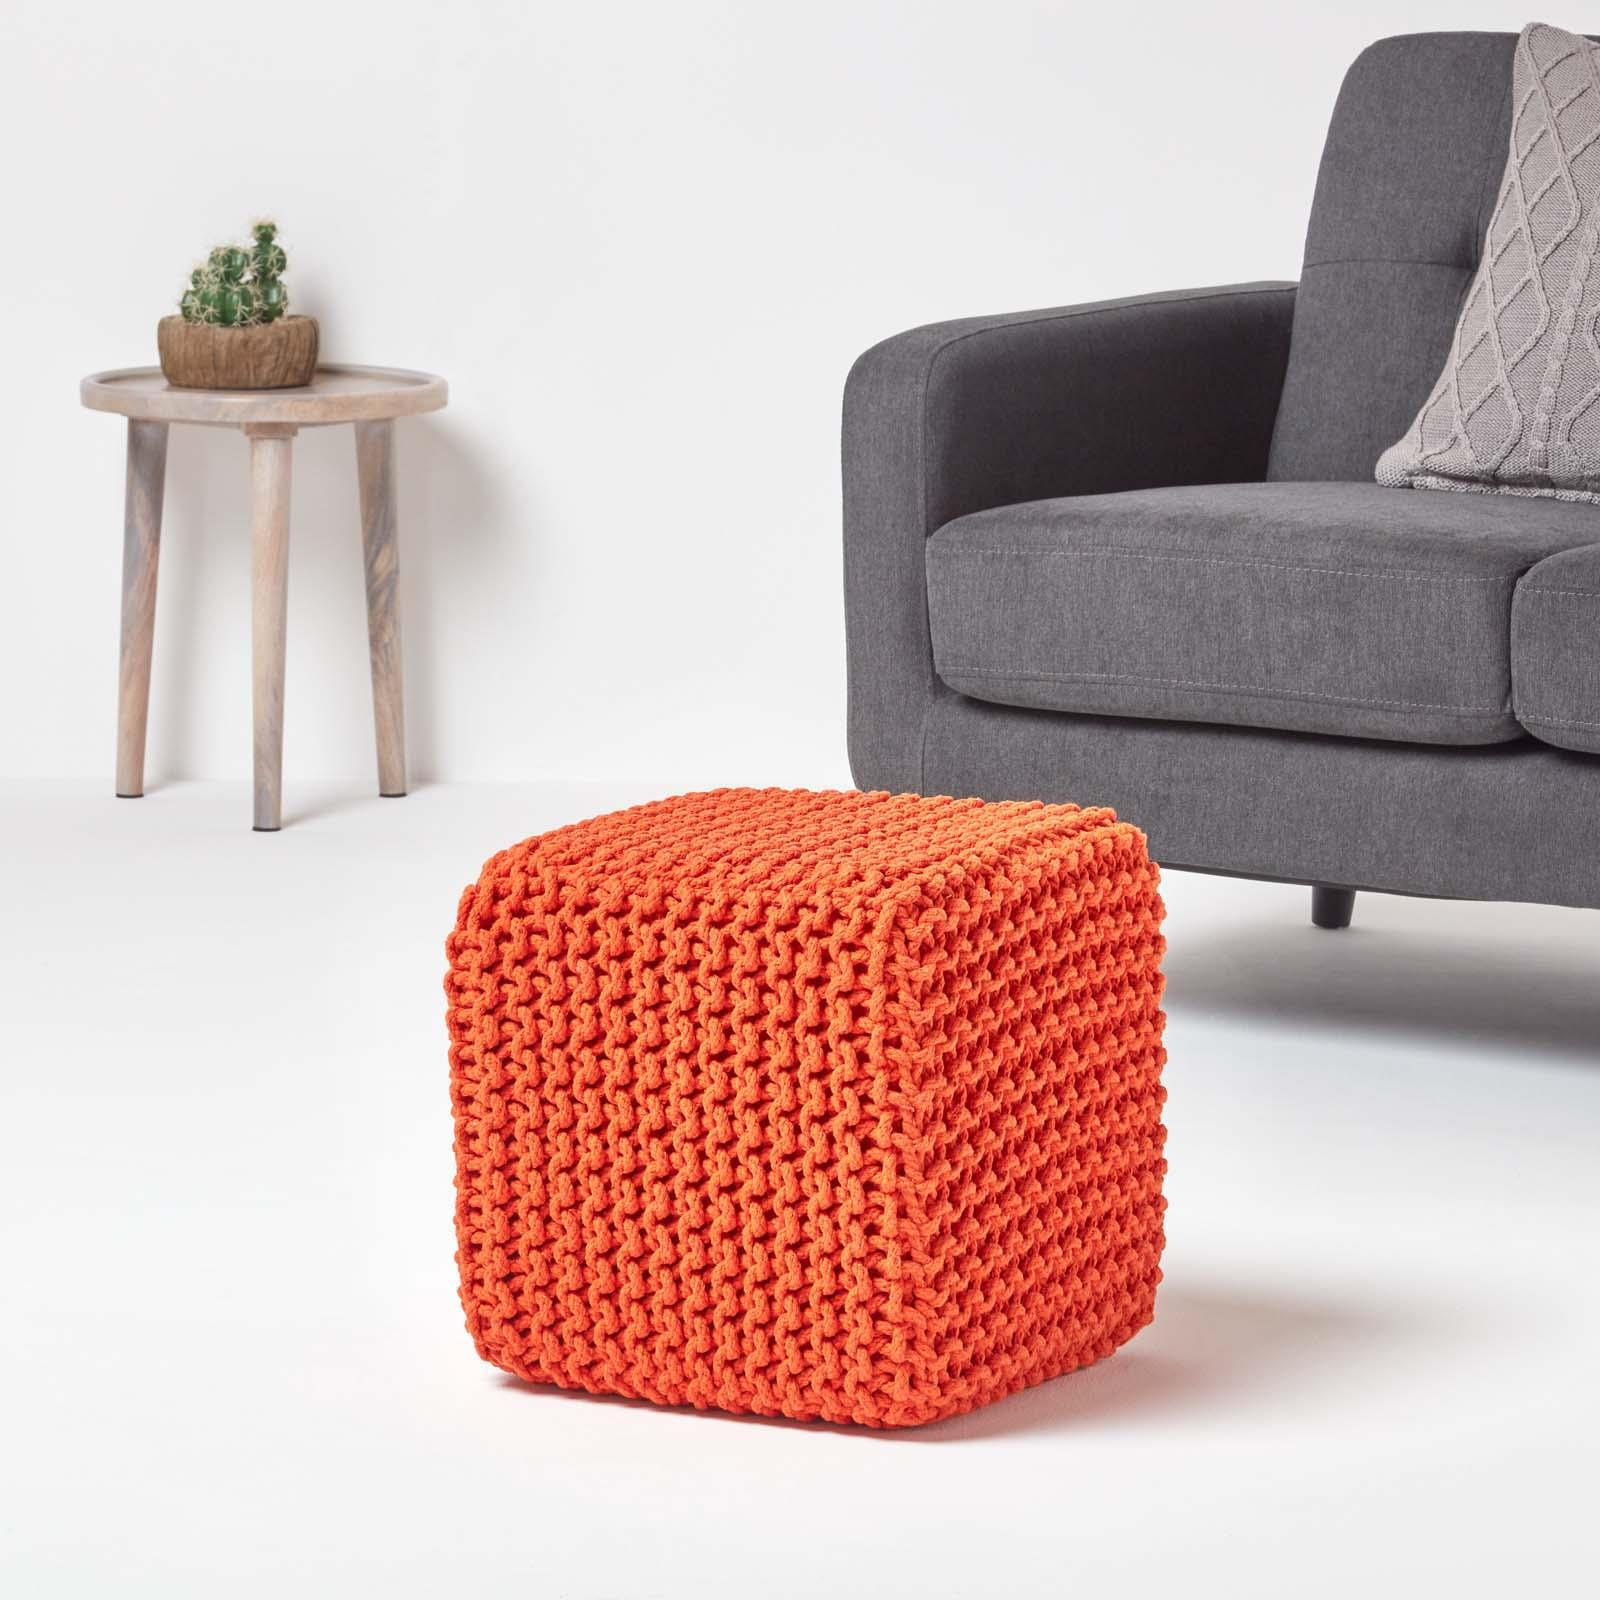 Hand-Knitted-100-Cotton-Pouffes-Round-Sphere-Or-Cube-Square-Chunky-Footstools thumbnail 122